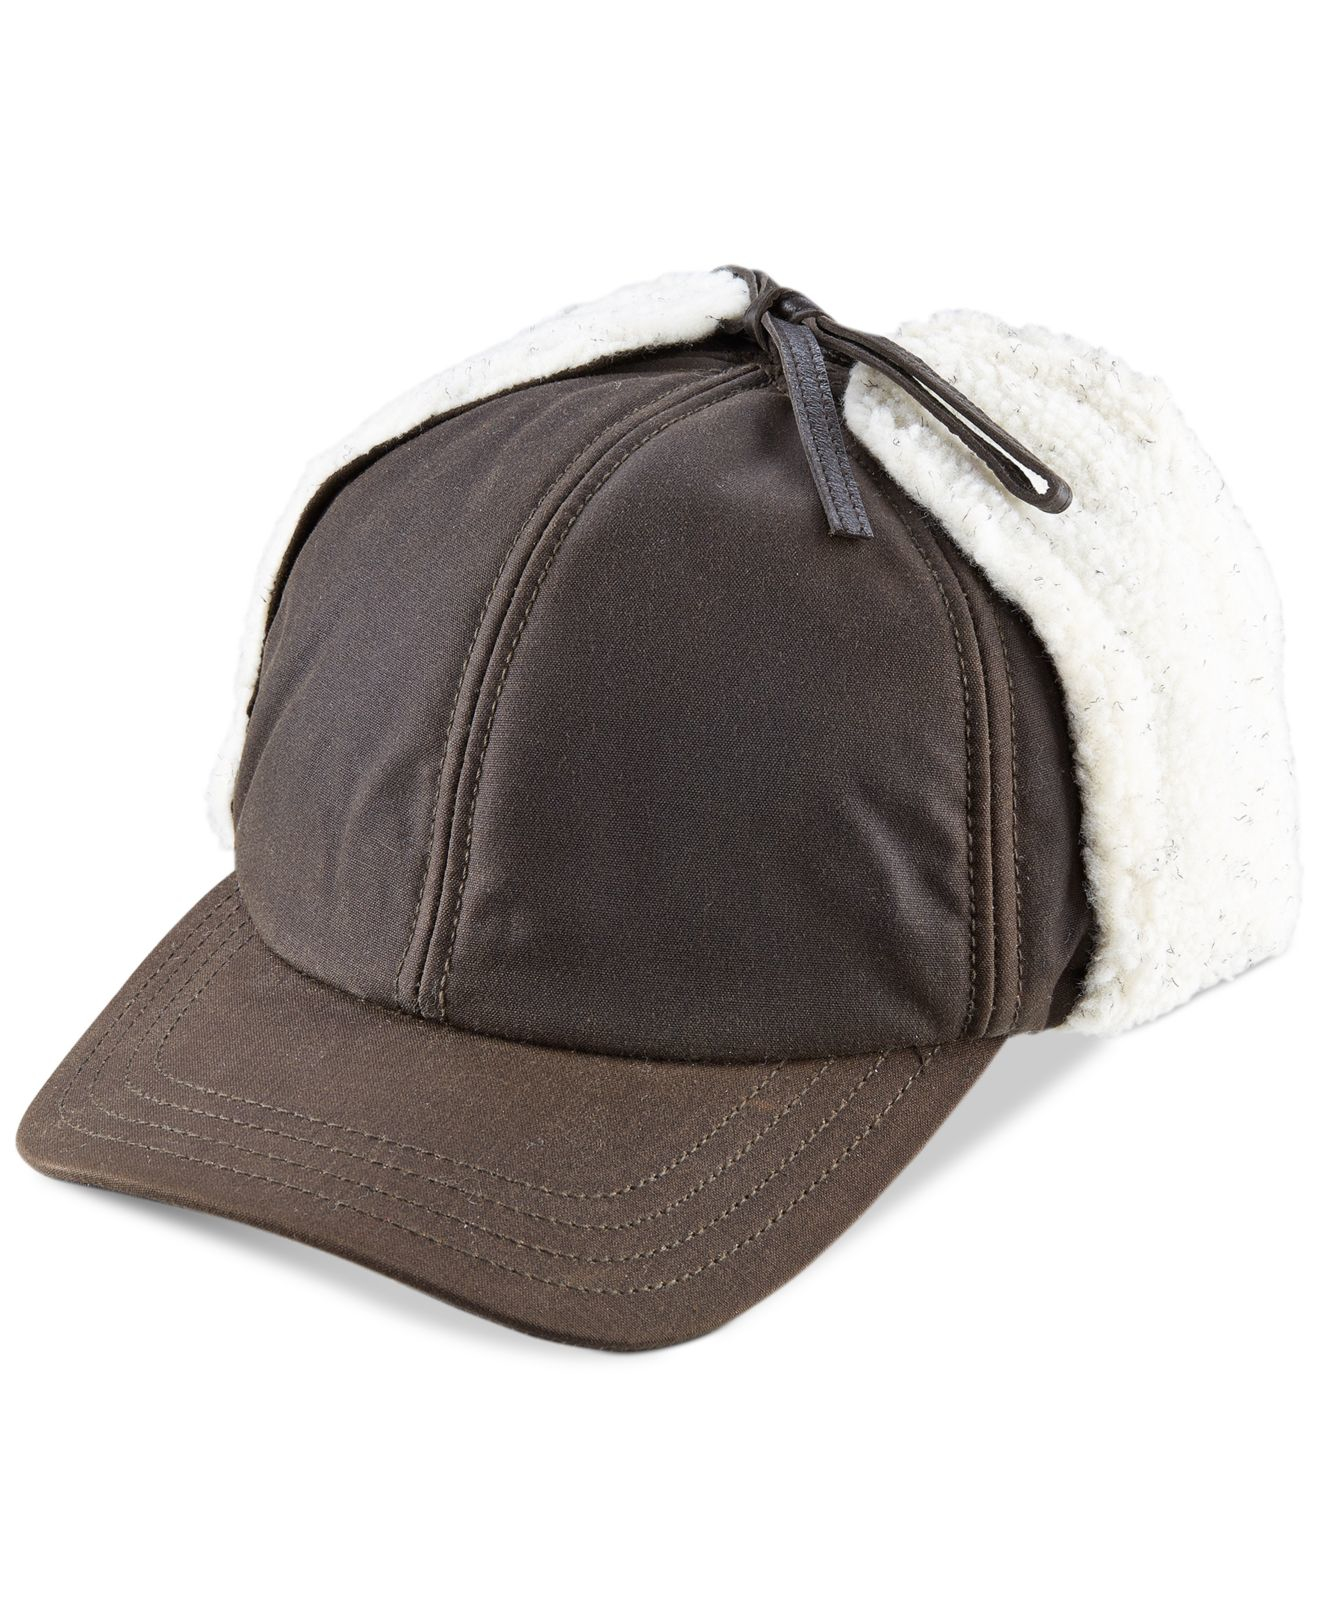 32495d6e5 Lyst - Woolrich Waxed Cotton Winter Trapper Cap With Sherpa Lined ...